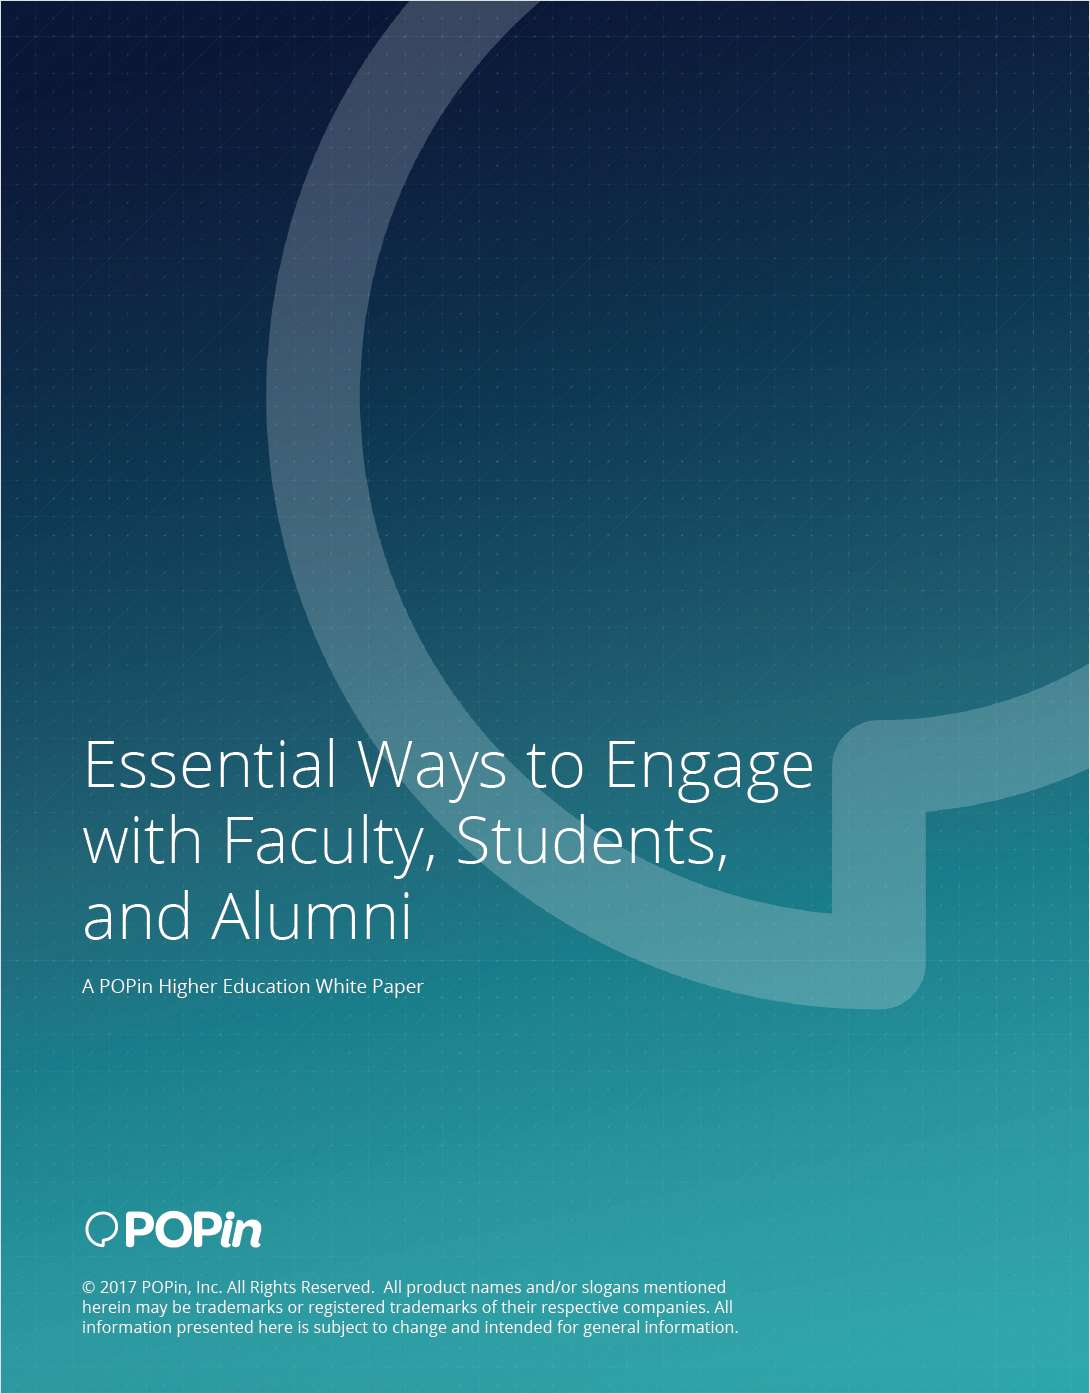 Essential Ways to Engage with Faculty, Students, and Alumni